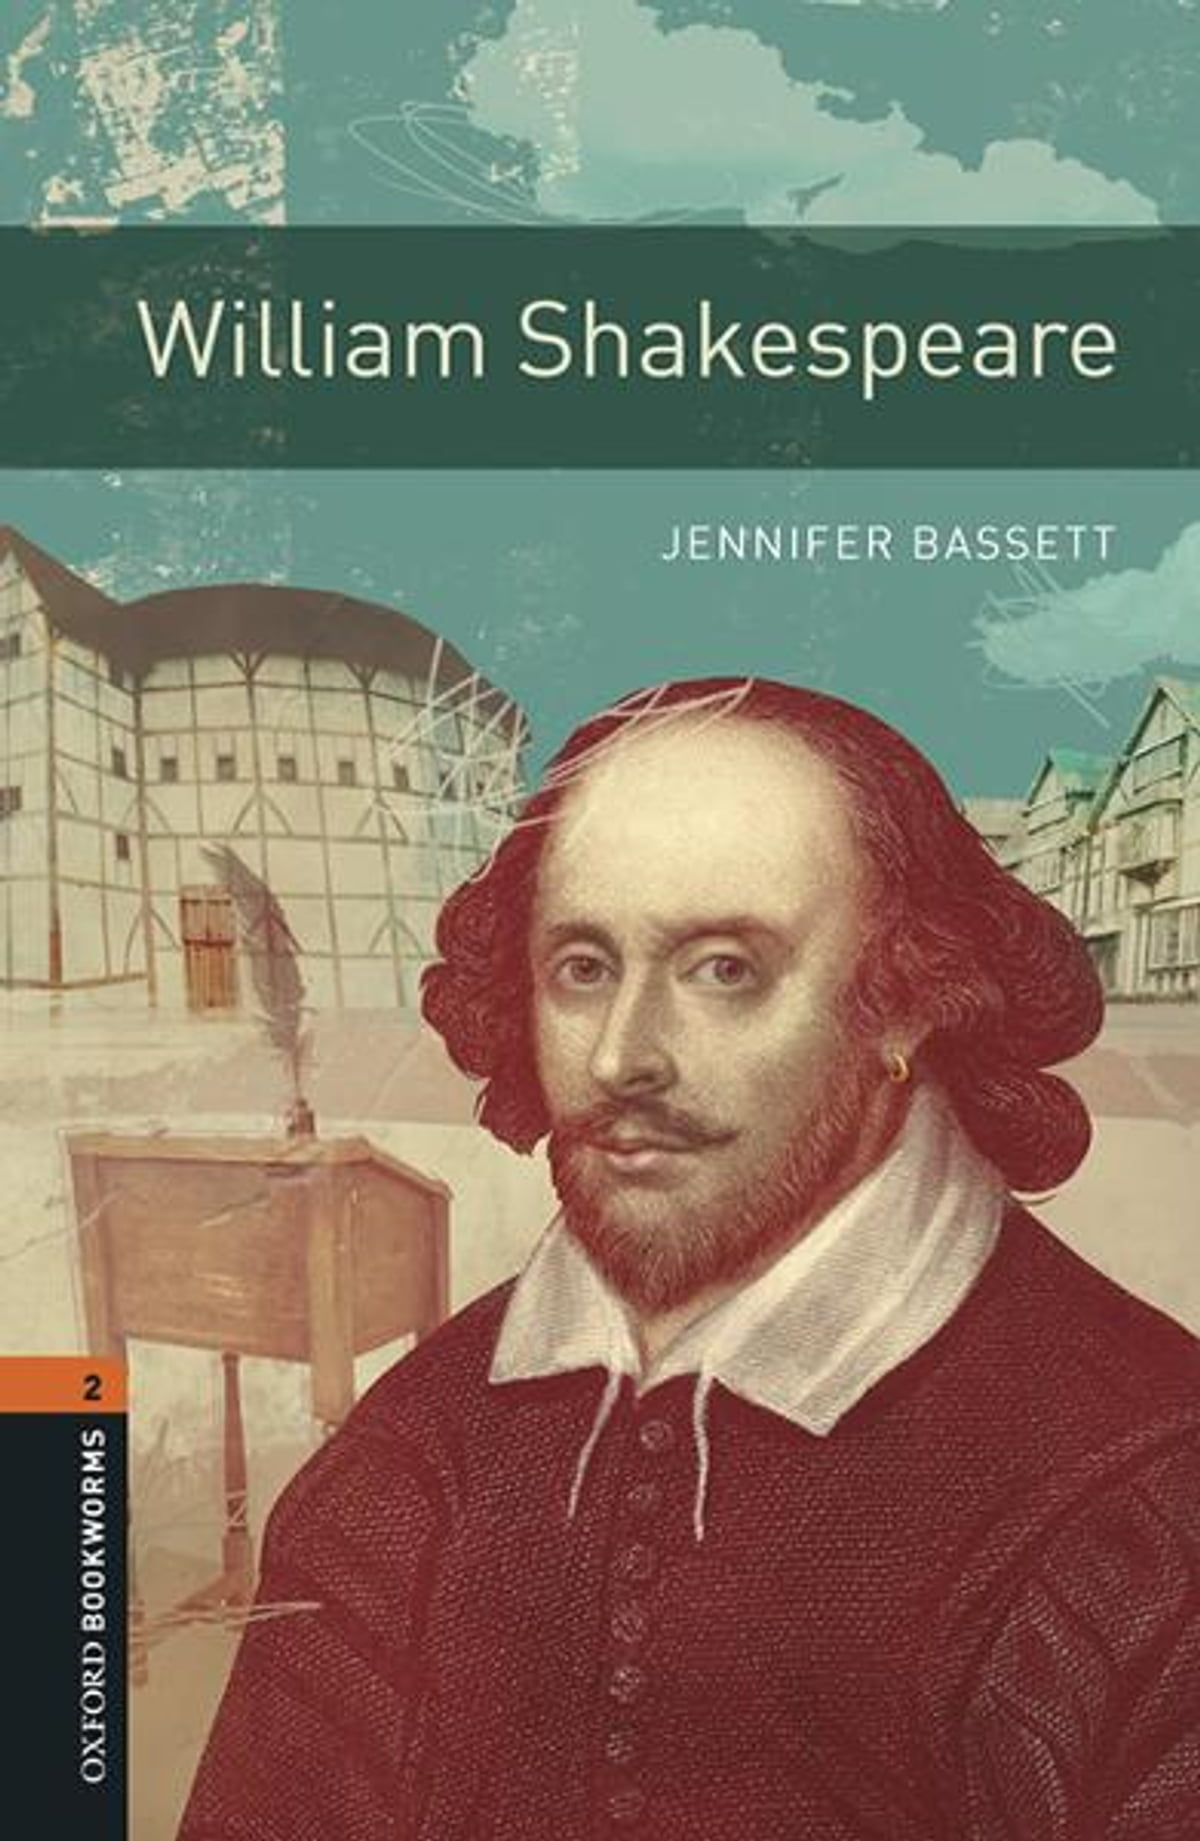 Oxford Bookworms Library William Shakespeare Level 2 Oxford Bookworms Library Ebook